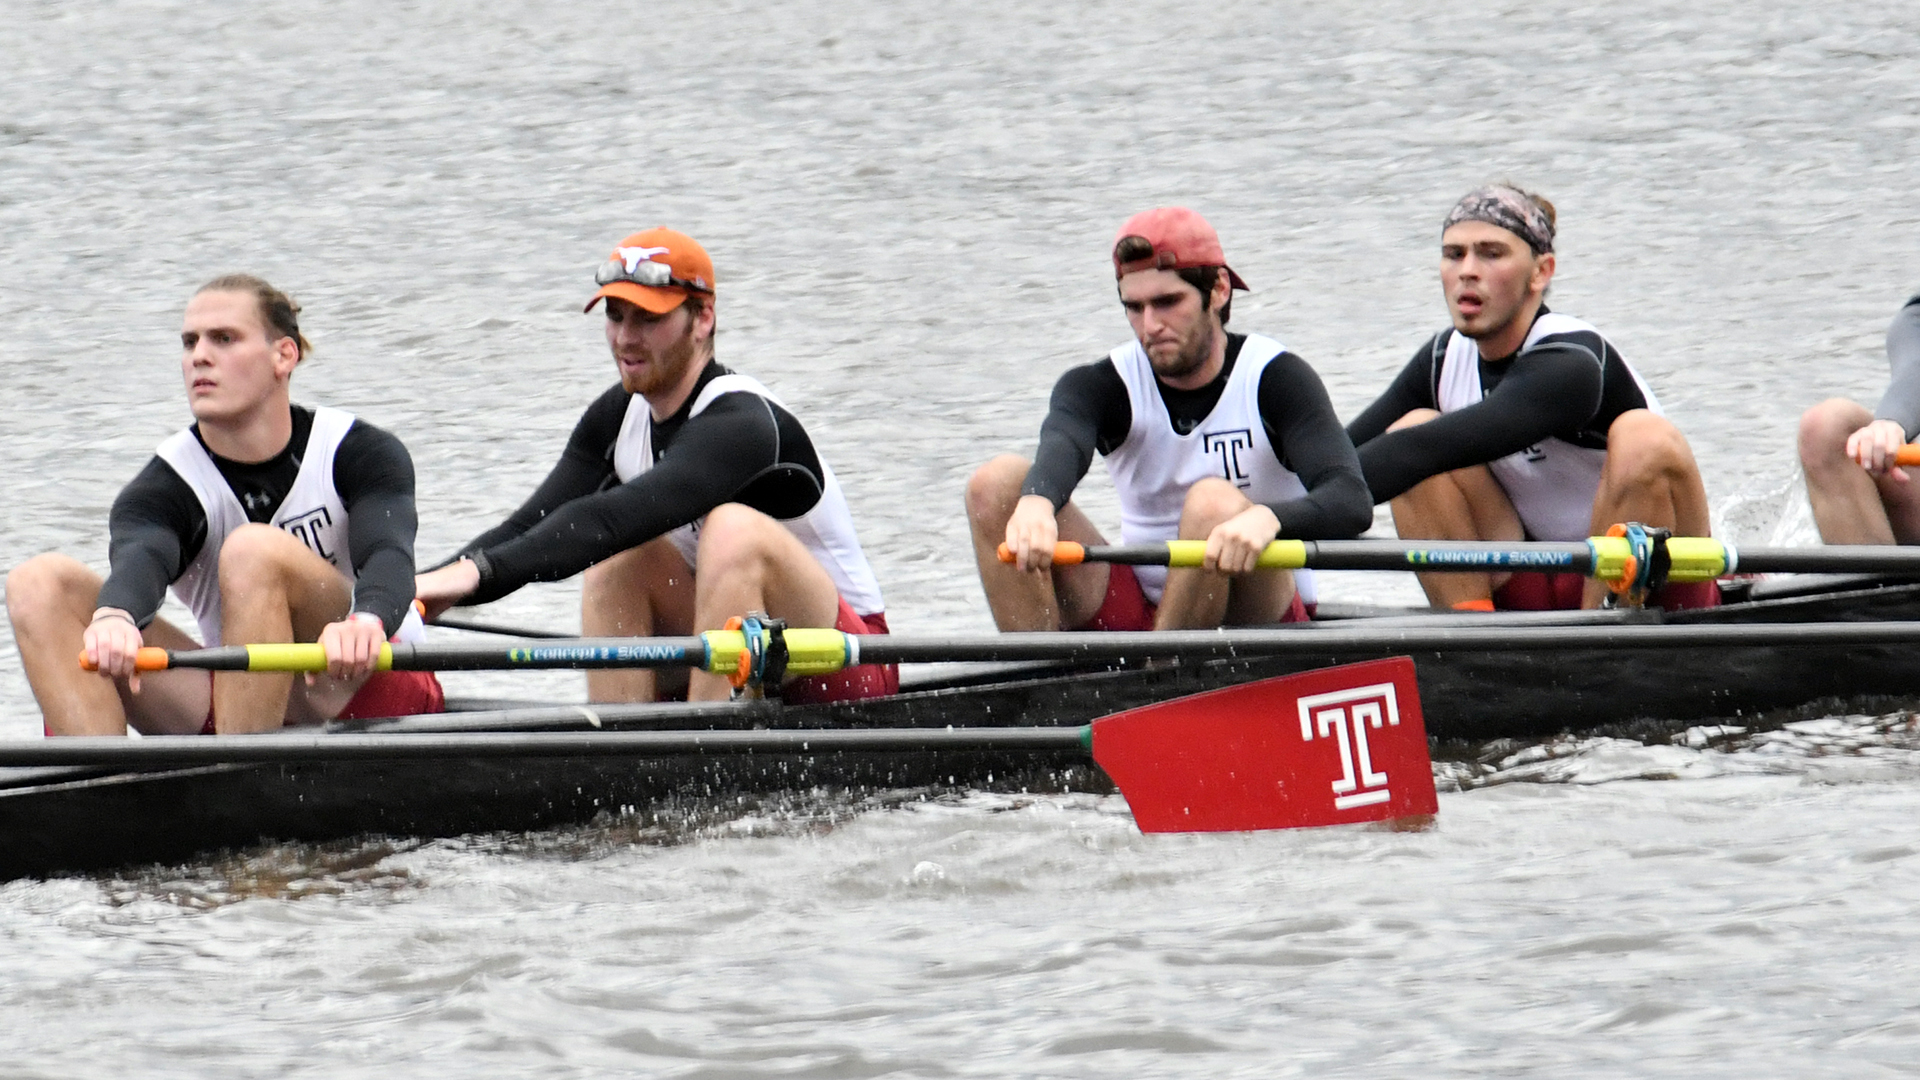 crew rowing men